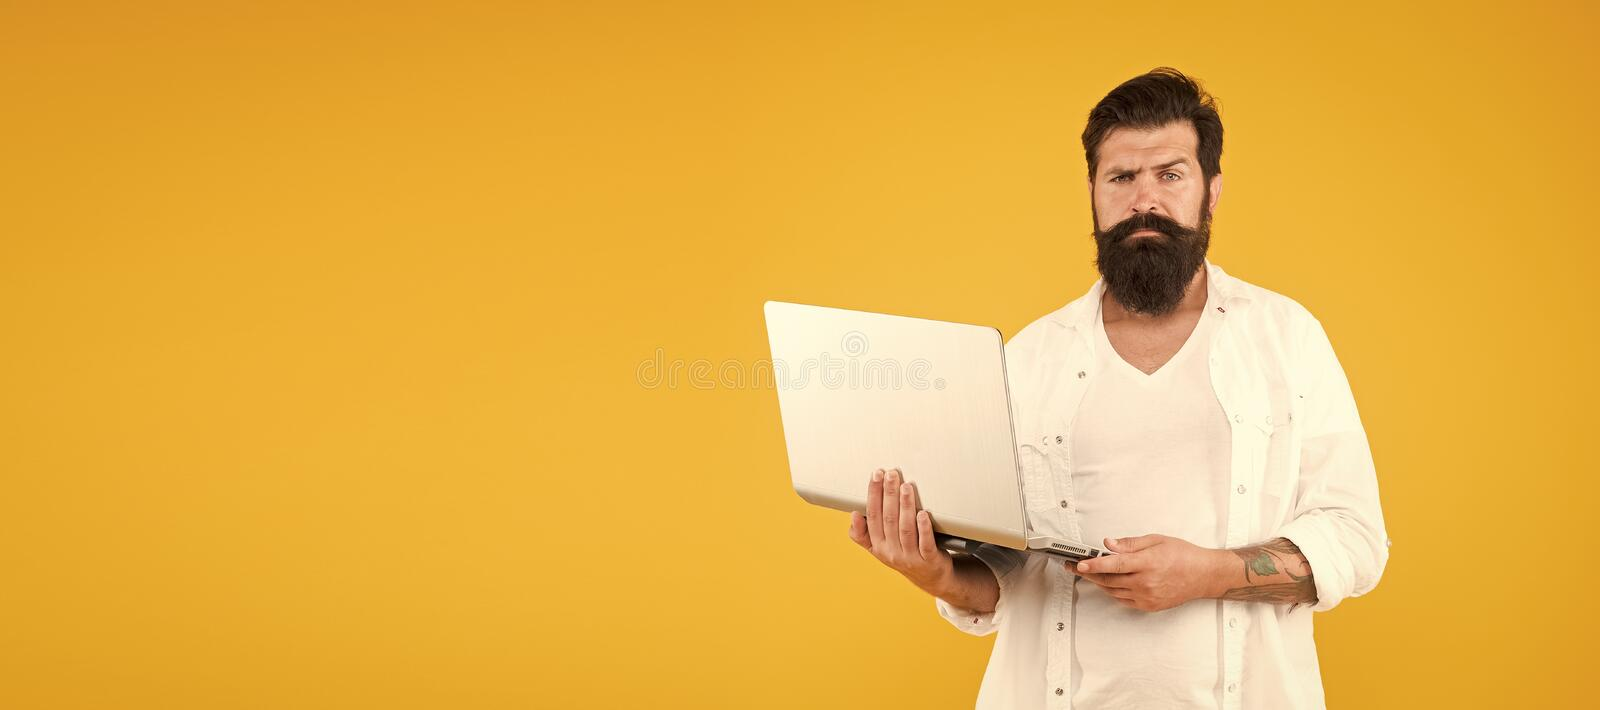 Bearded man with notebook. Online shopping. Man using notebook. Surfing internet. In search of inspiration. Online stock image